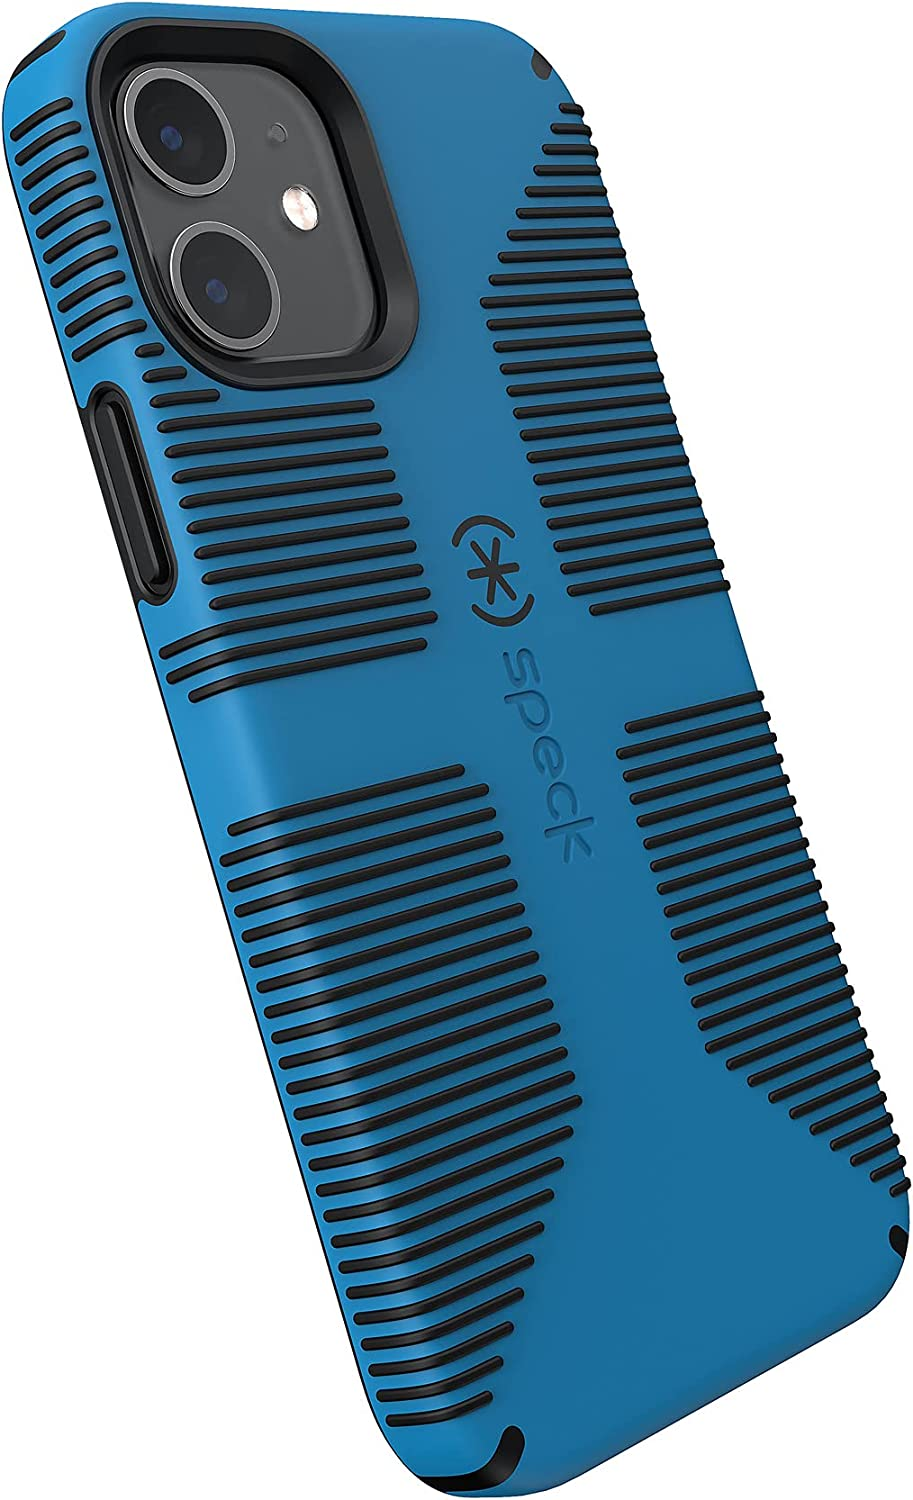 Speck Products CandyShell Pro Grip iPhone 12 / iPhone 12 Pro Case, Varsity Blue/Black